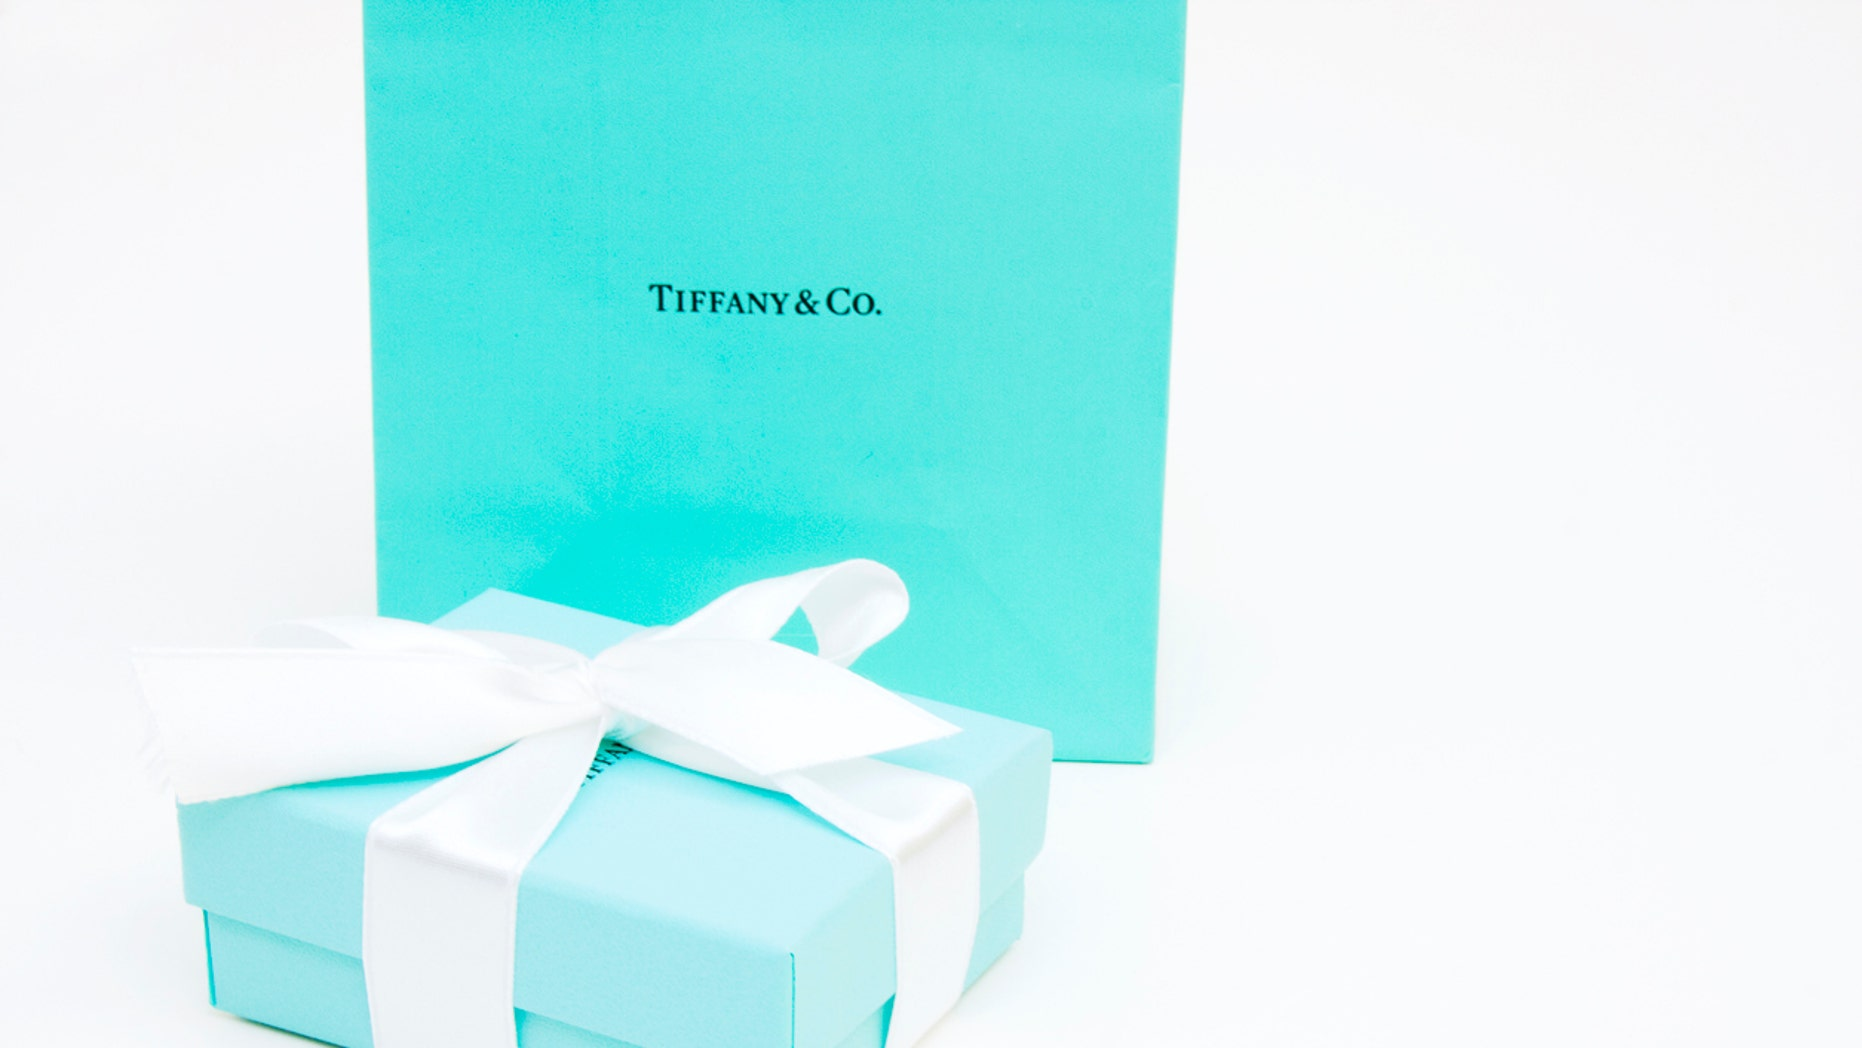 Tiffany & Co has released a new Everyday Objects line, and people are concerned about the price tags.